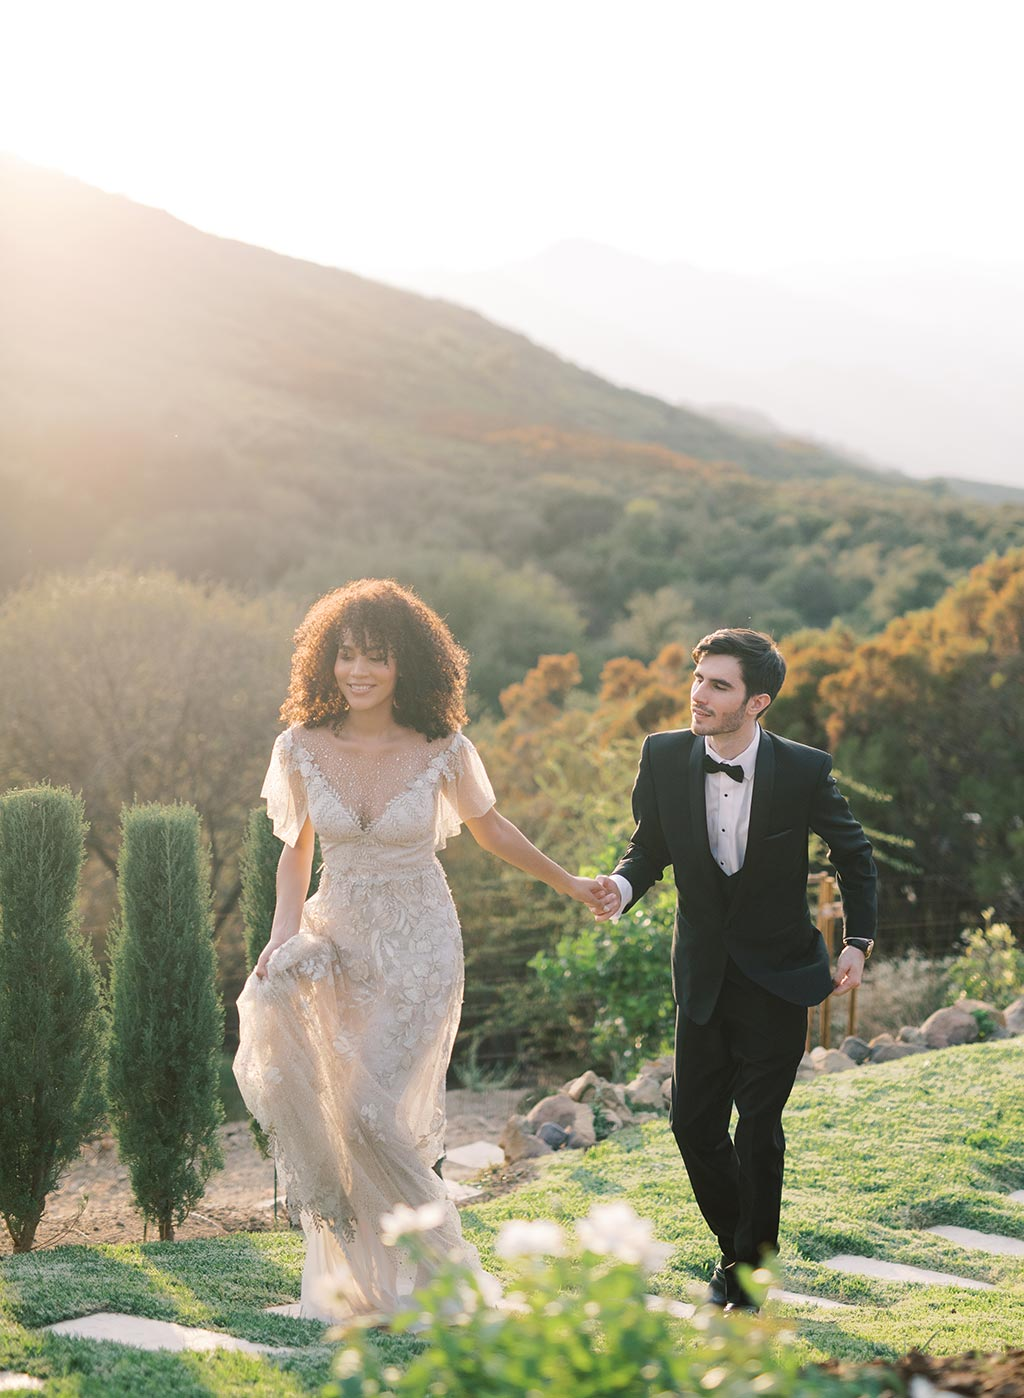 Claire Pettibone Soleil Wedding Dress in Malibu